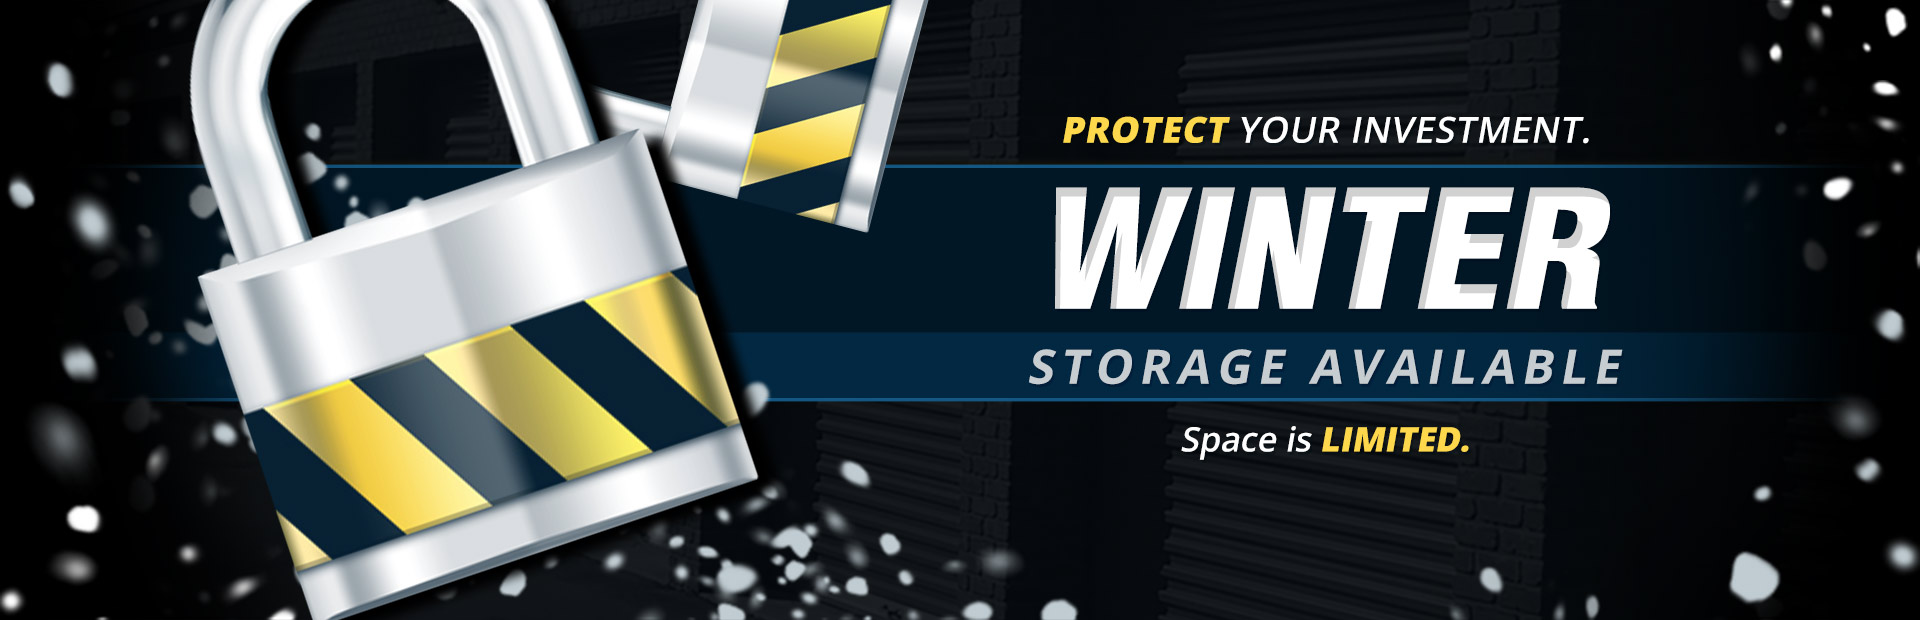 Protect your investment. Winter storage is available. Contact us at 608-741-9900 for details.